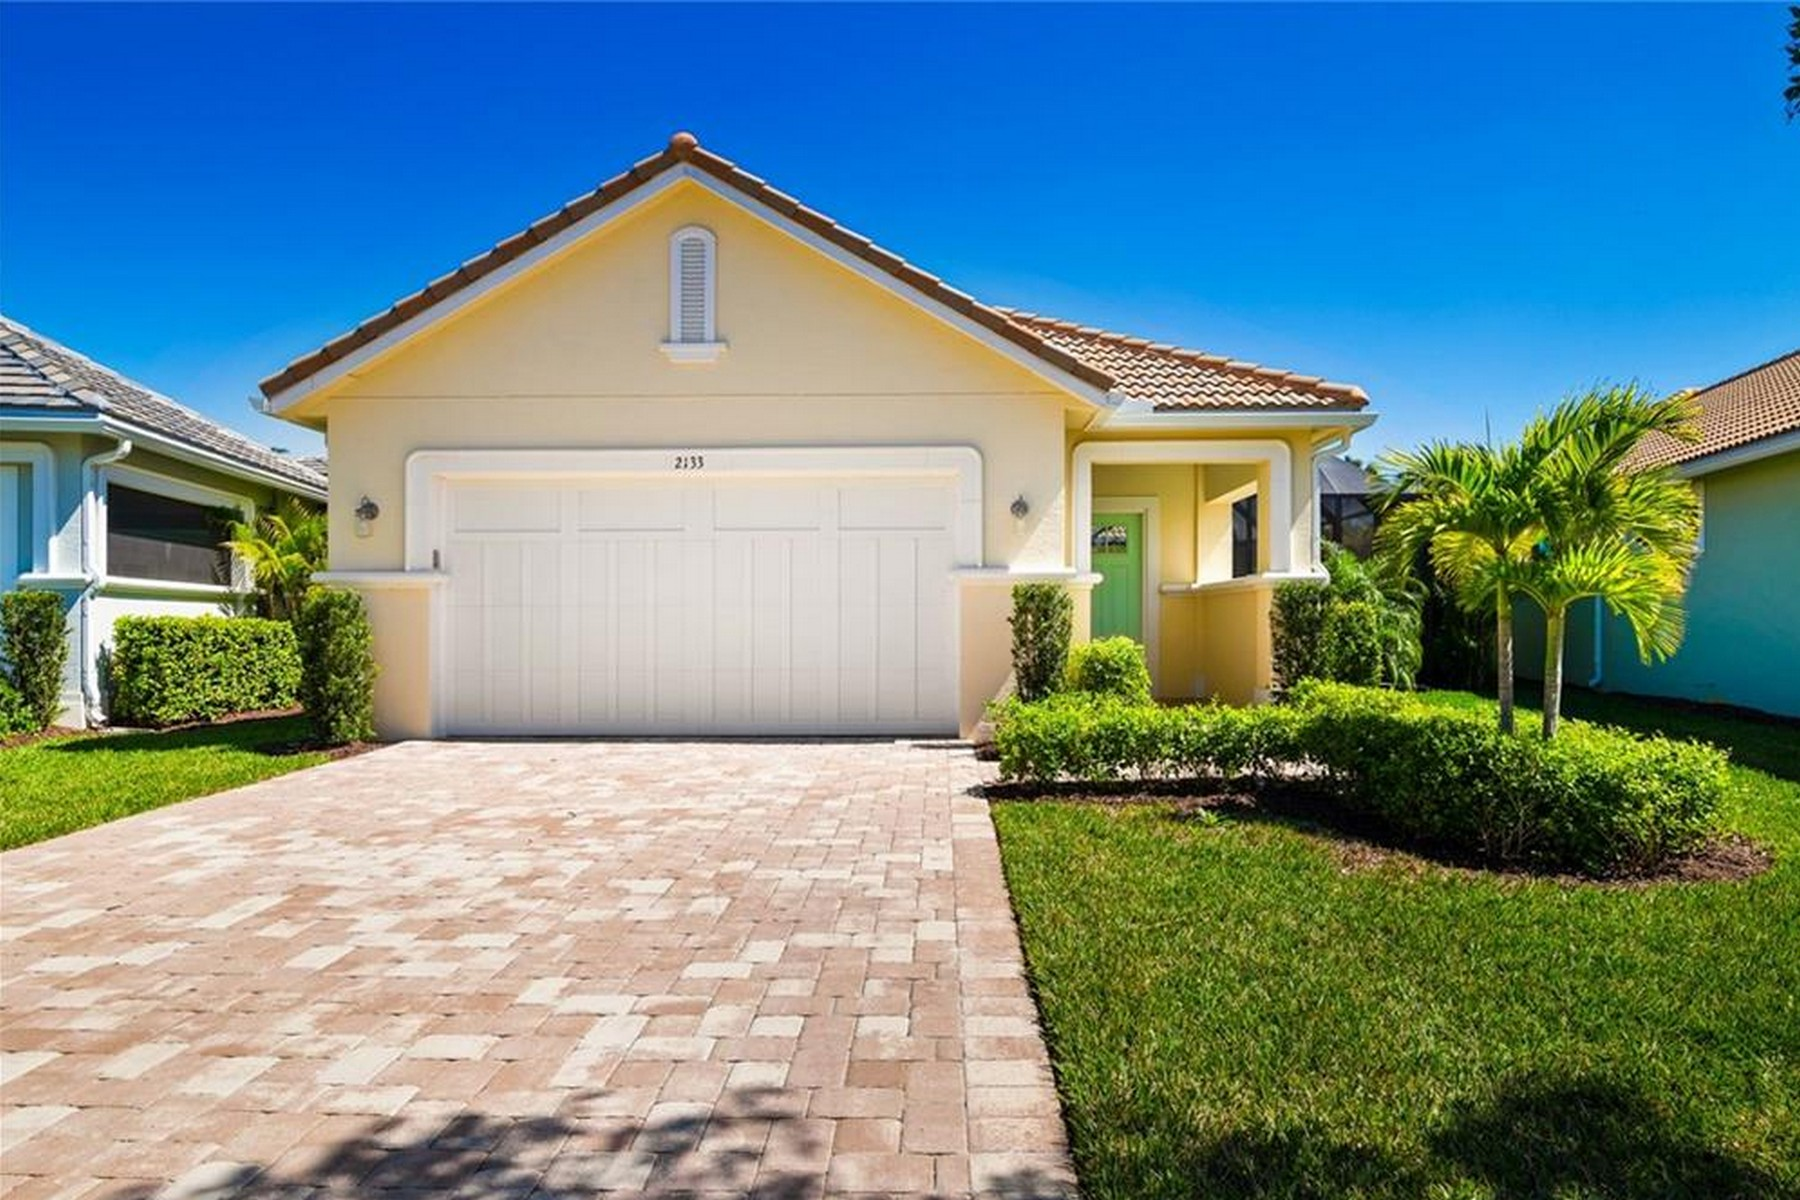 Single Family Homes for Sale at St Lucia Model 2141 Falls Circle Vero Beach, Florida 32967 United States